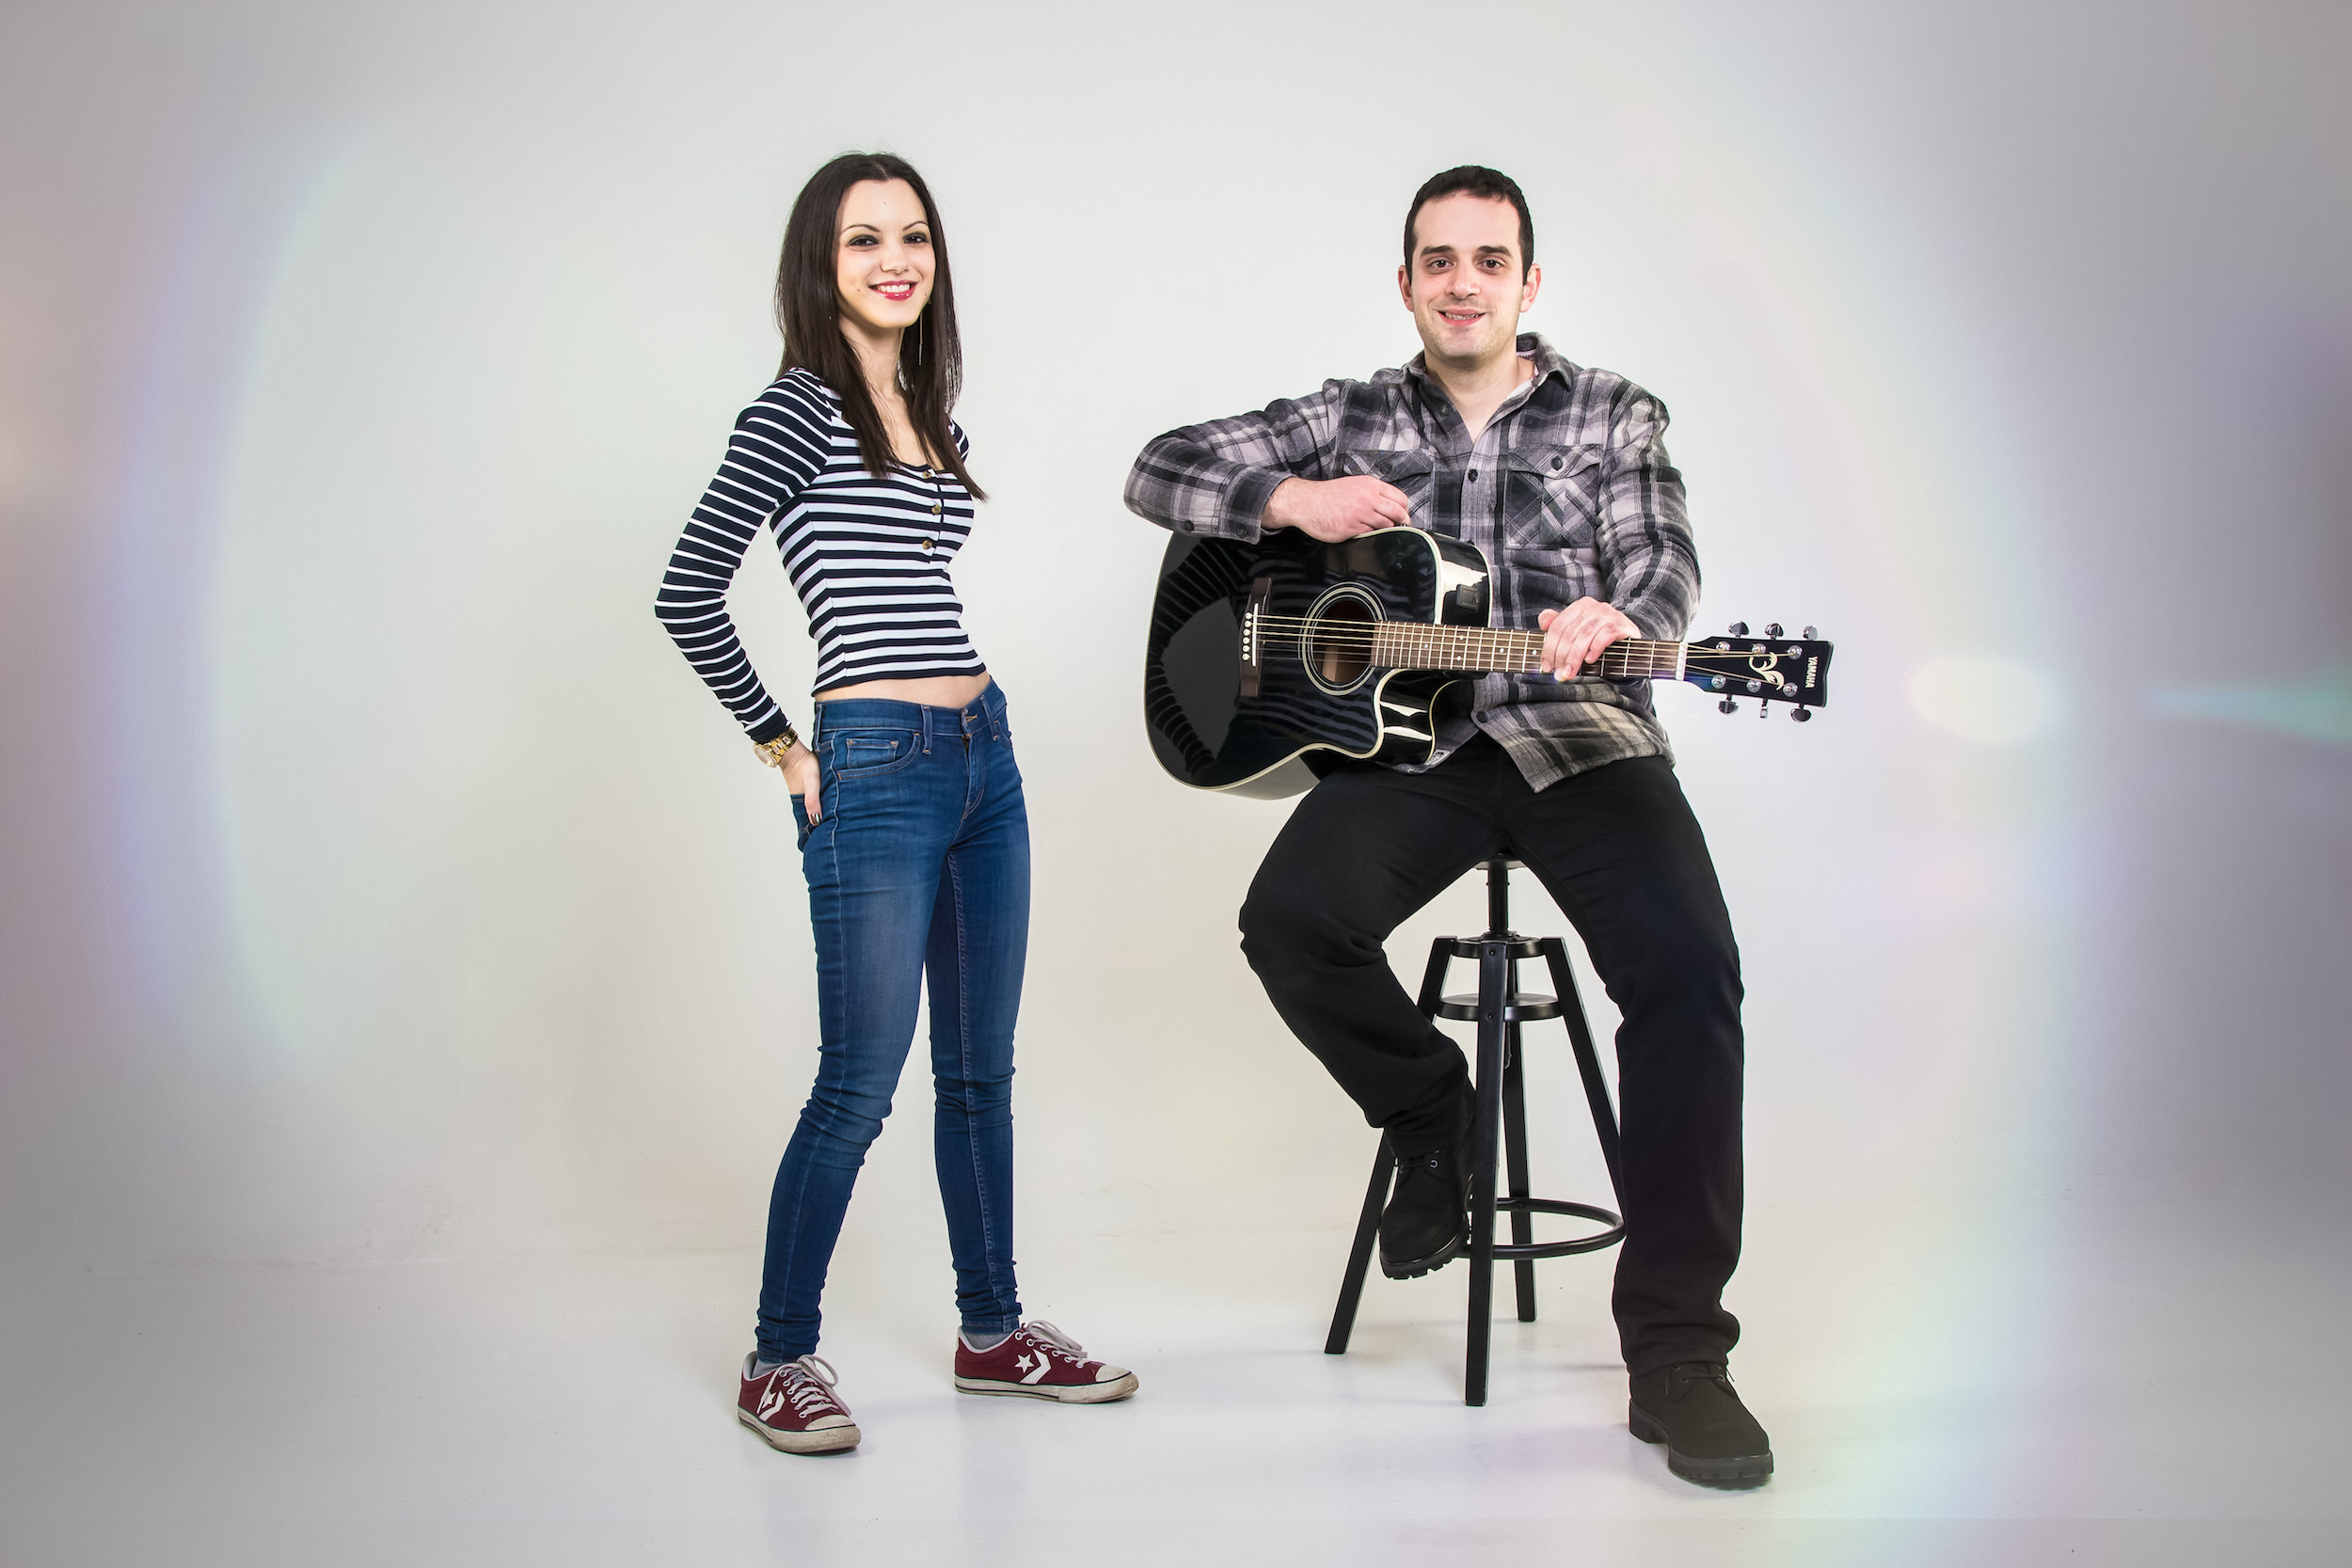 Breakout! - 4-piece band for weddings, parties and functions from Uptown Music